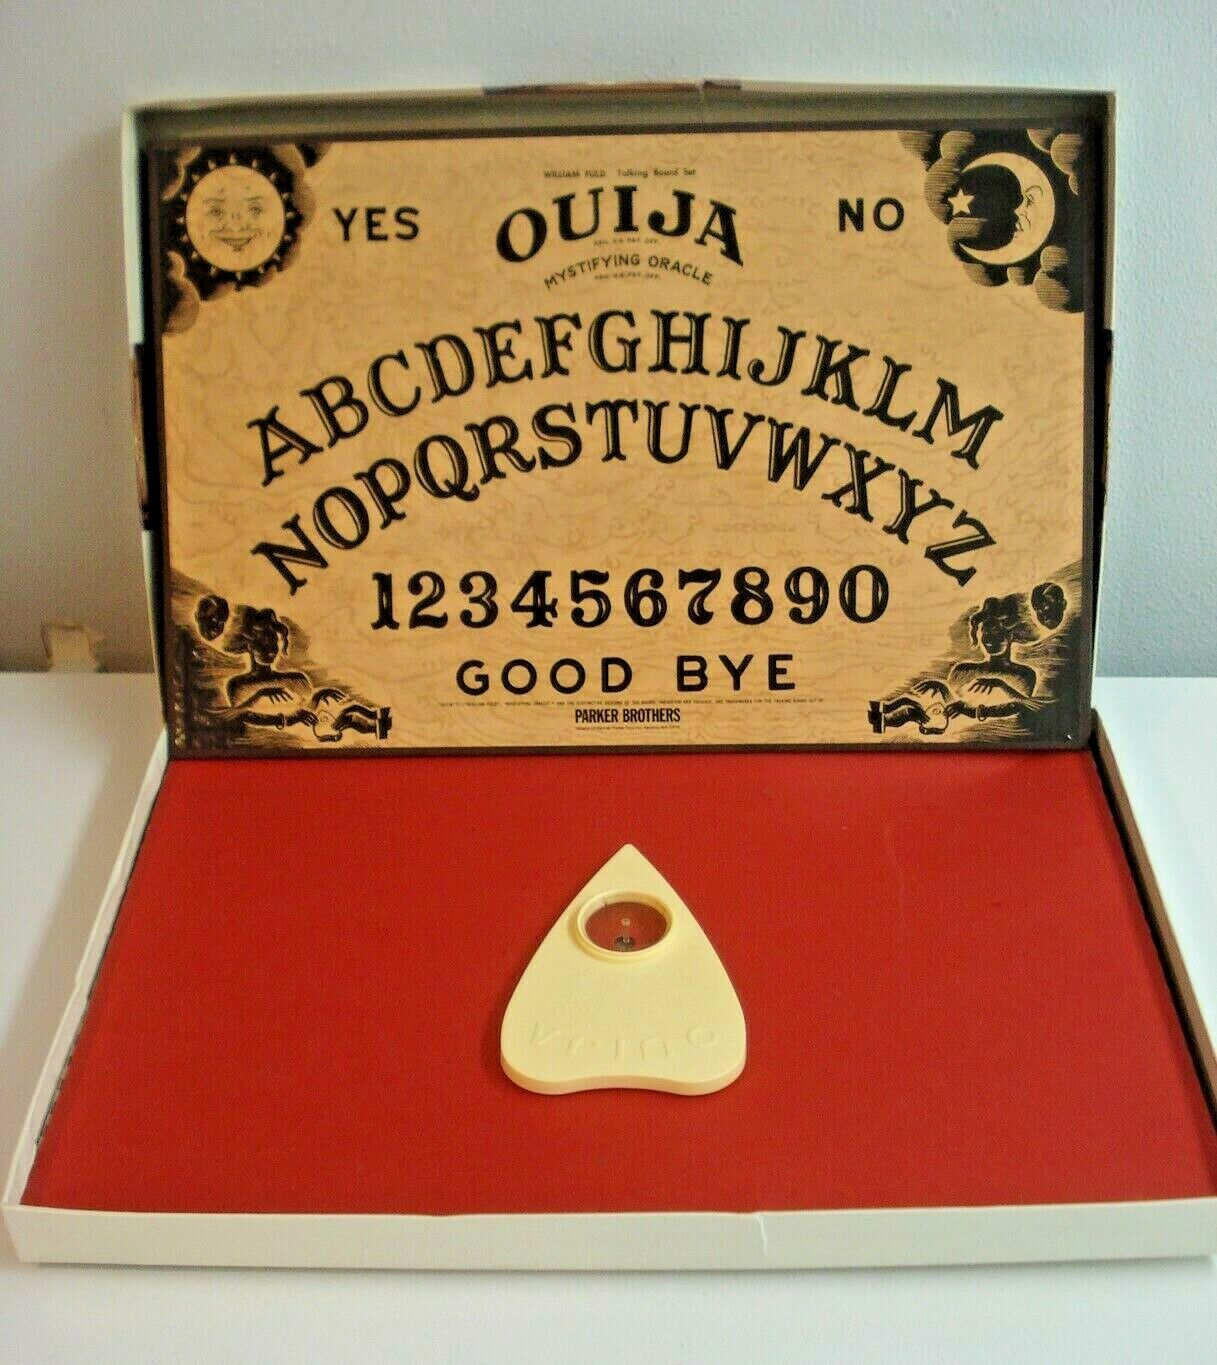 Vintage 1992 Parker Brothers OUIJA BOARD GAME W/BOX Mystifying Oracle-GREAT COND - $10.00